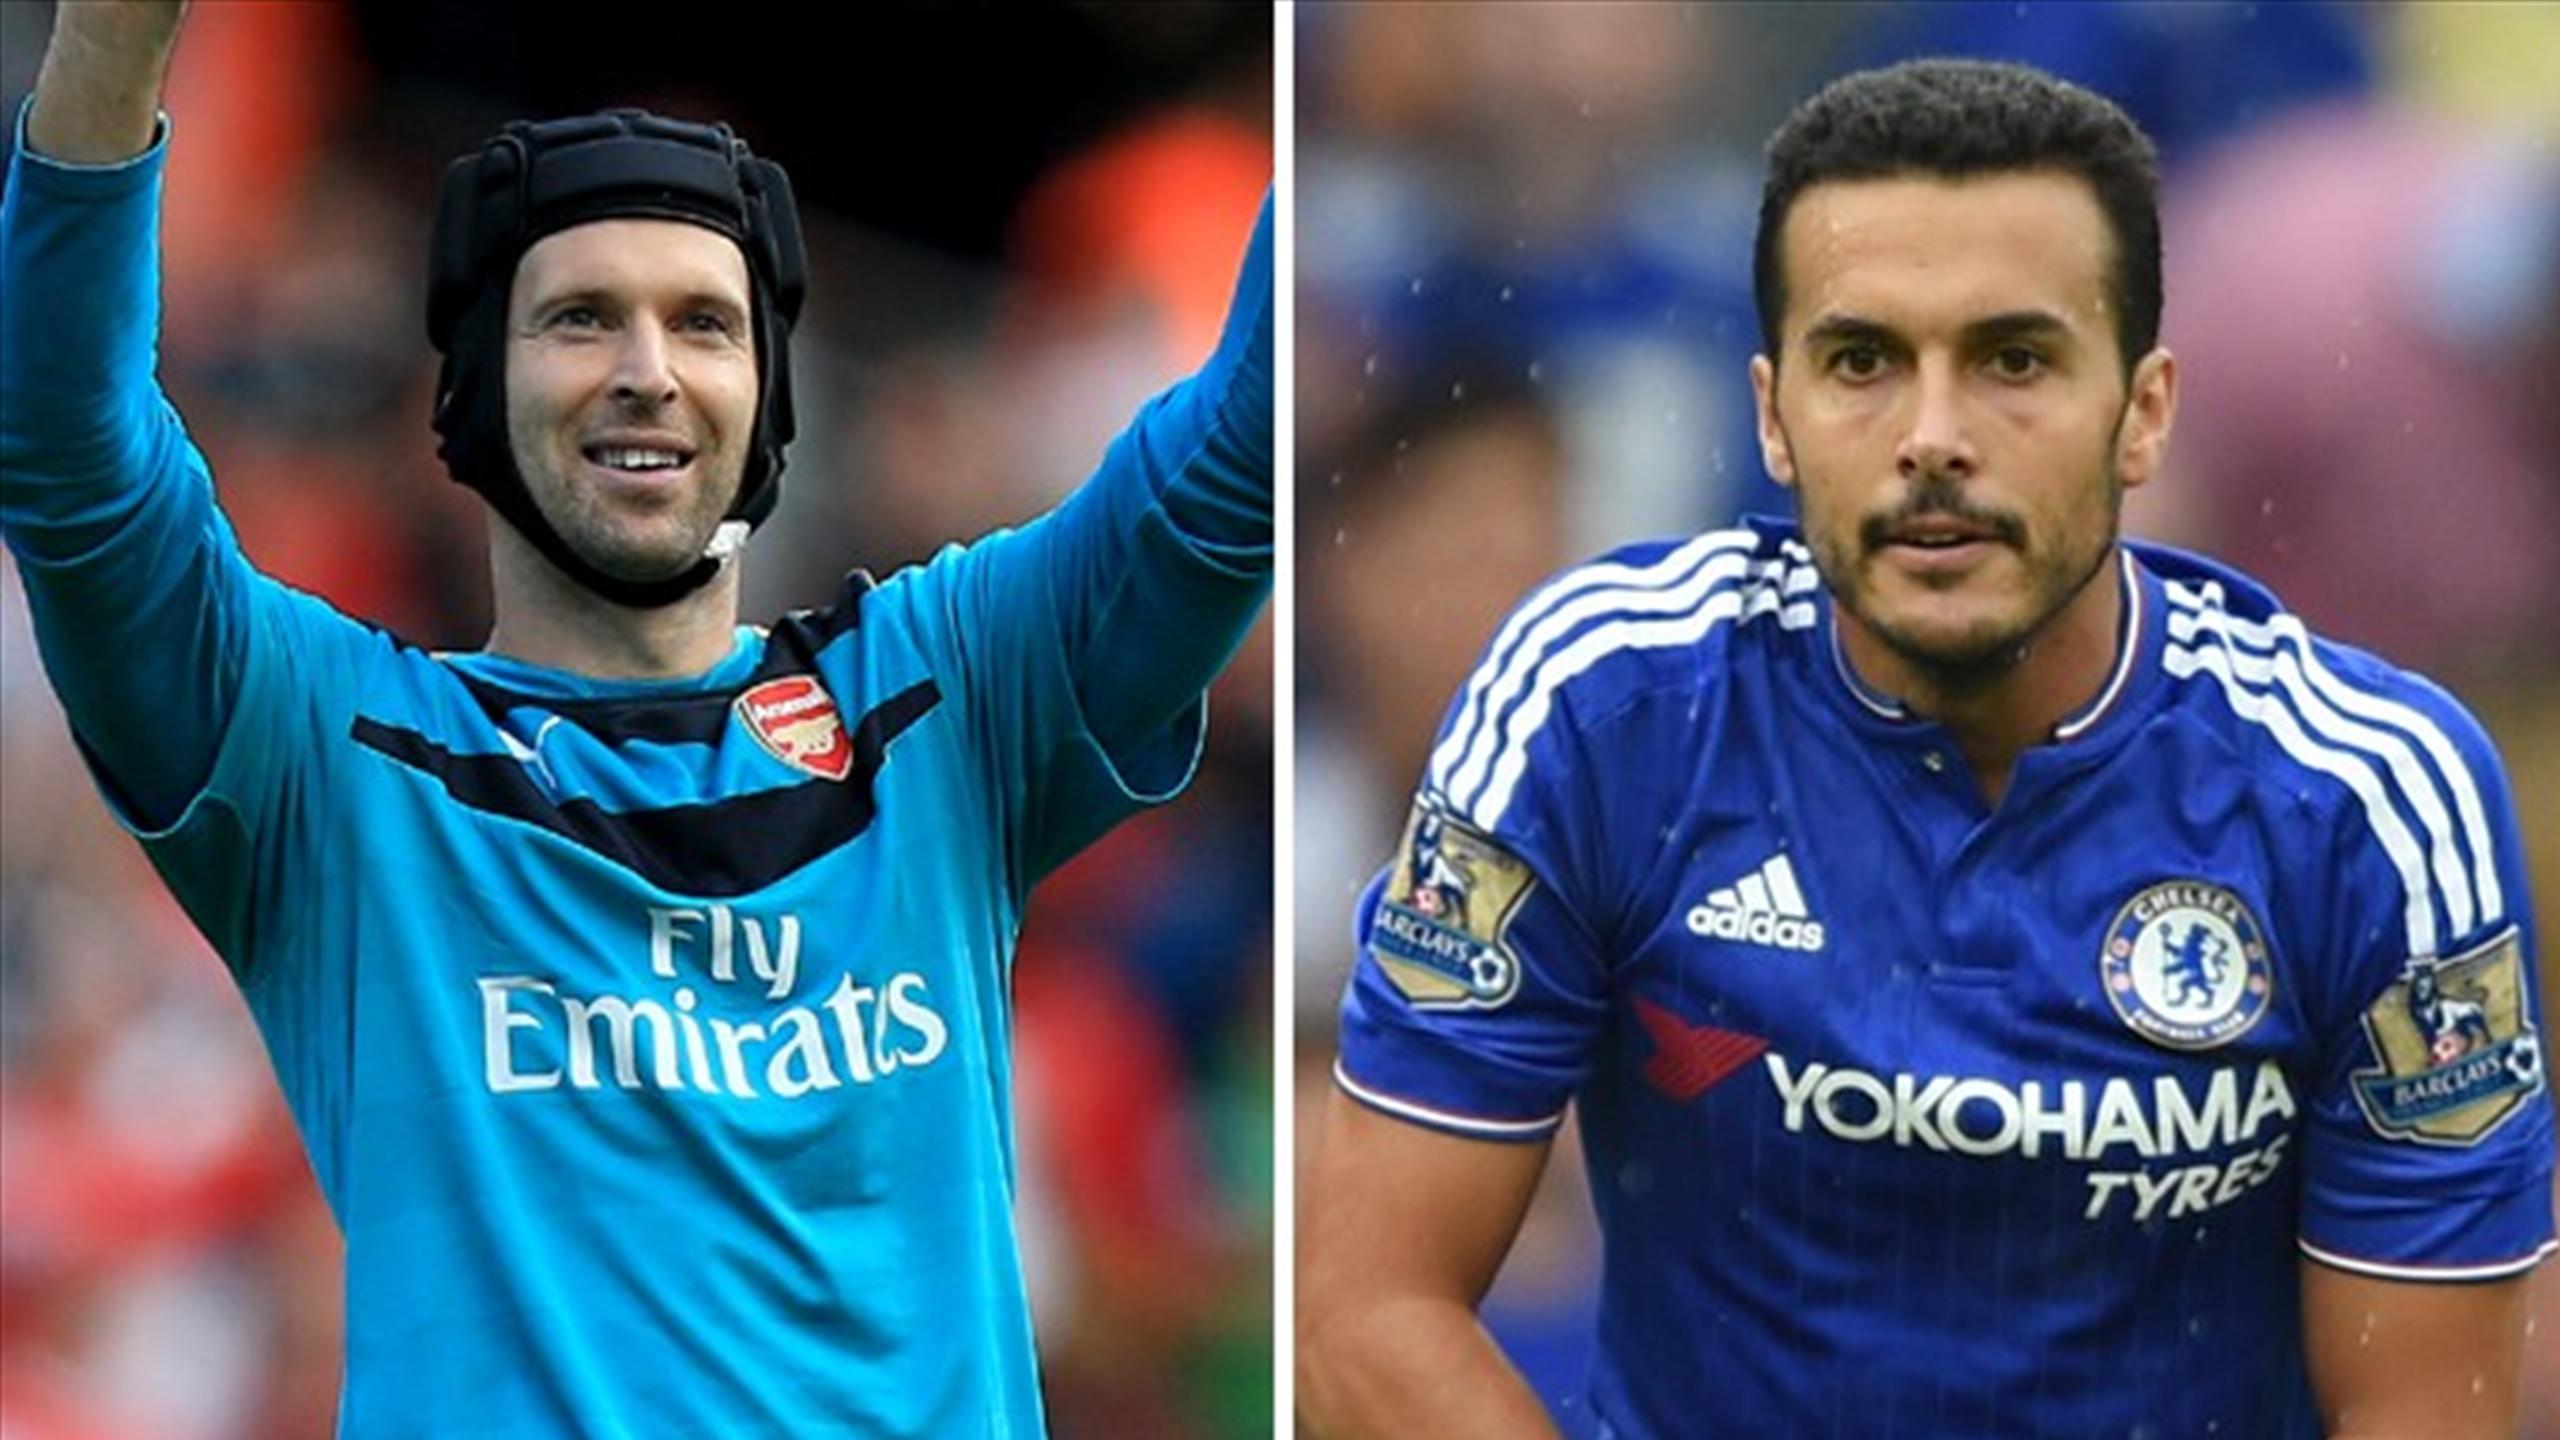 Premier League summer signings Petr Cech, Pedro and Memphis Depay